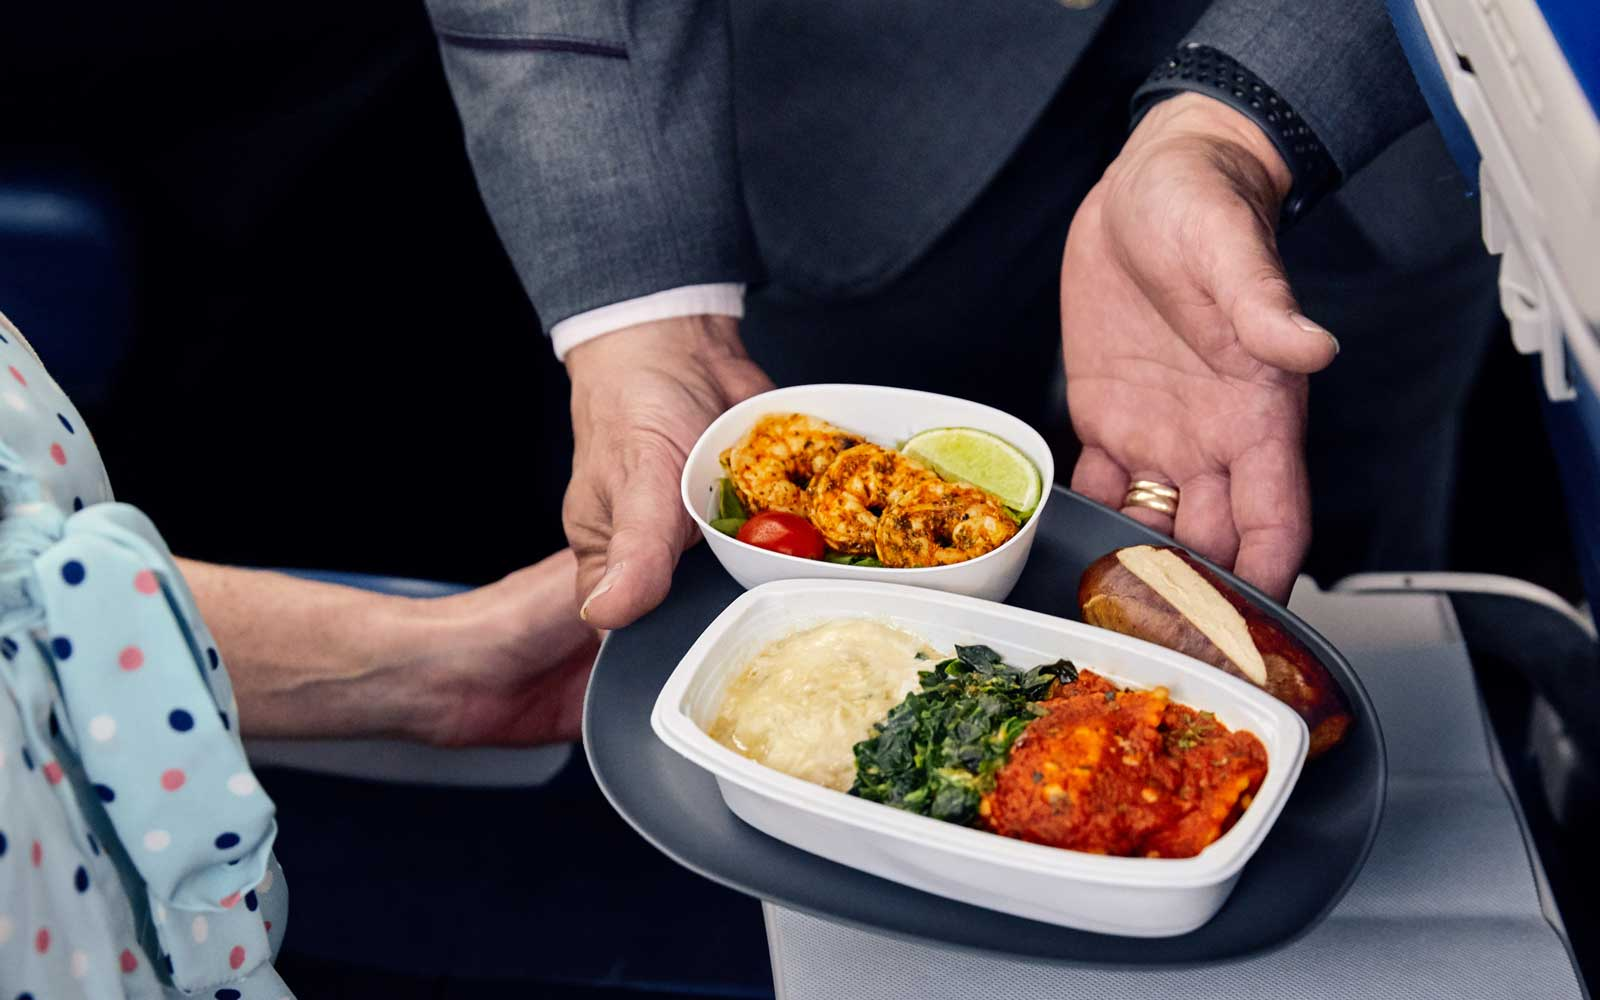 Meals will include a selection of entrees inspired by dishes served on Delta One.